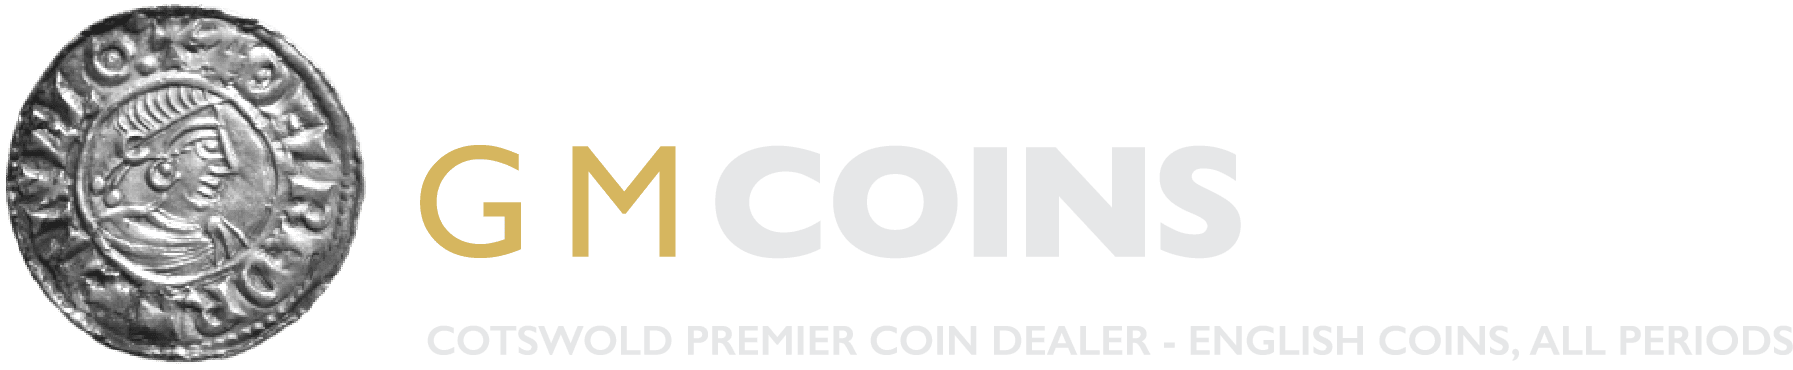 GM Coins | Premier Coin Dealer